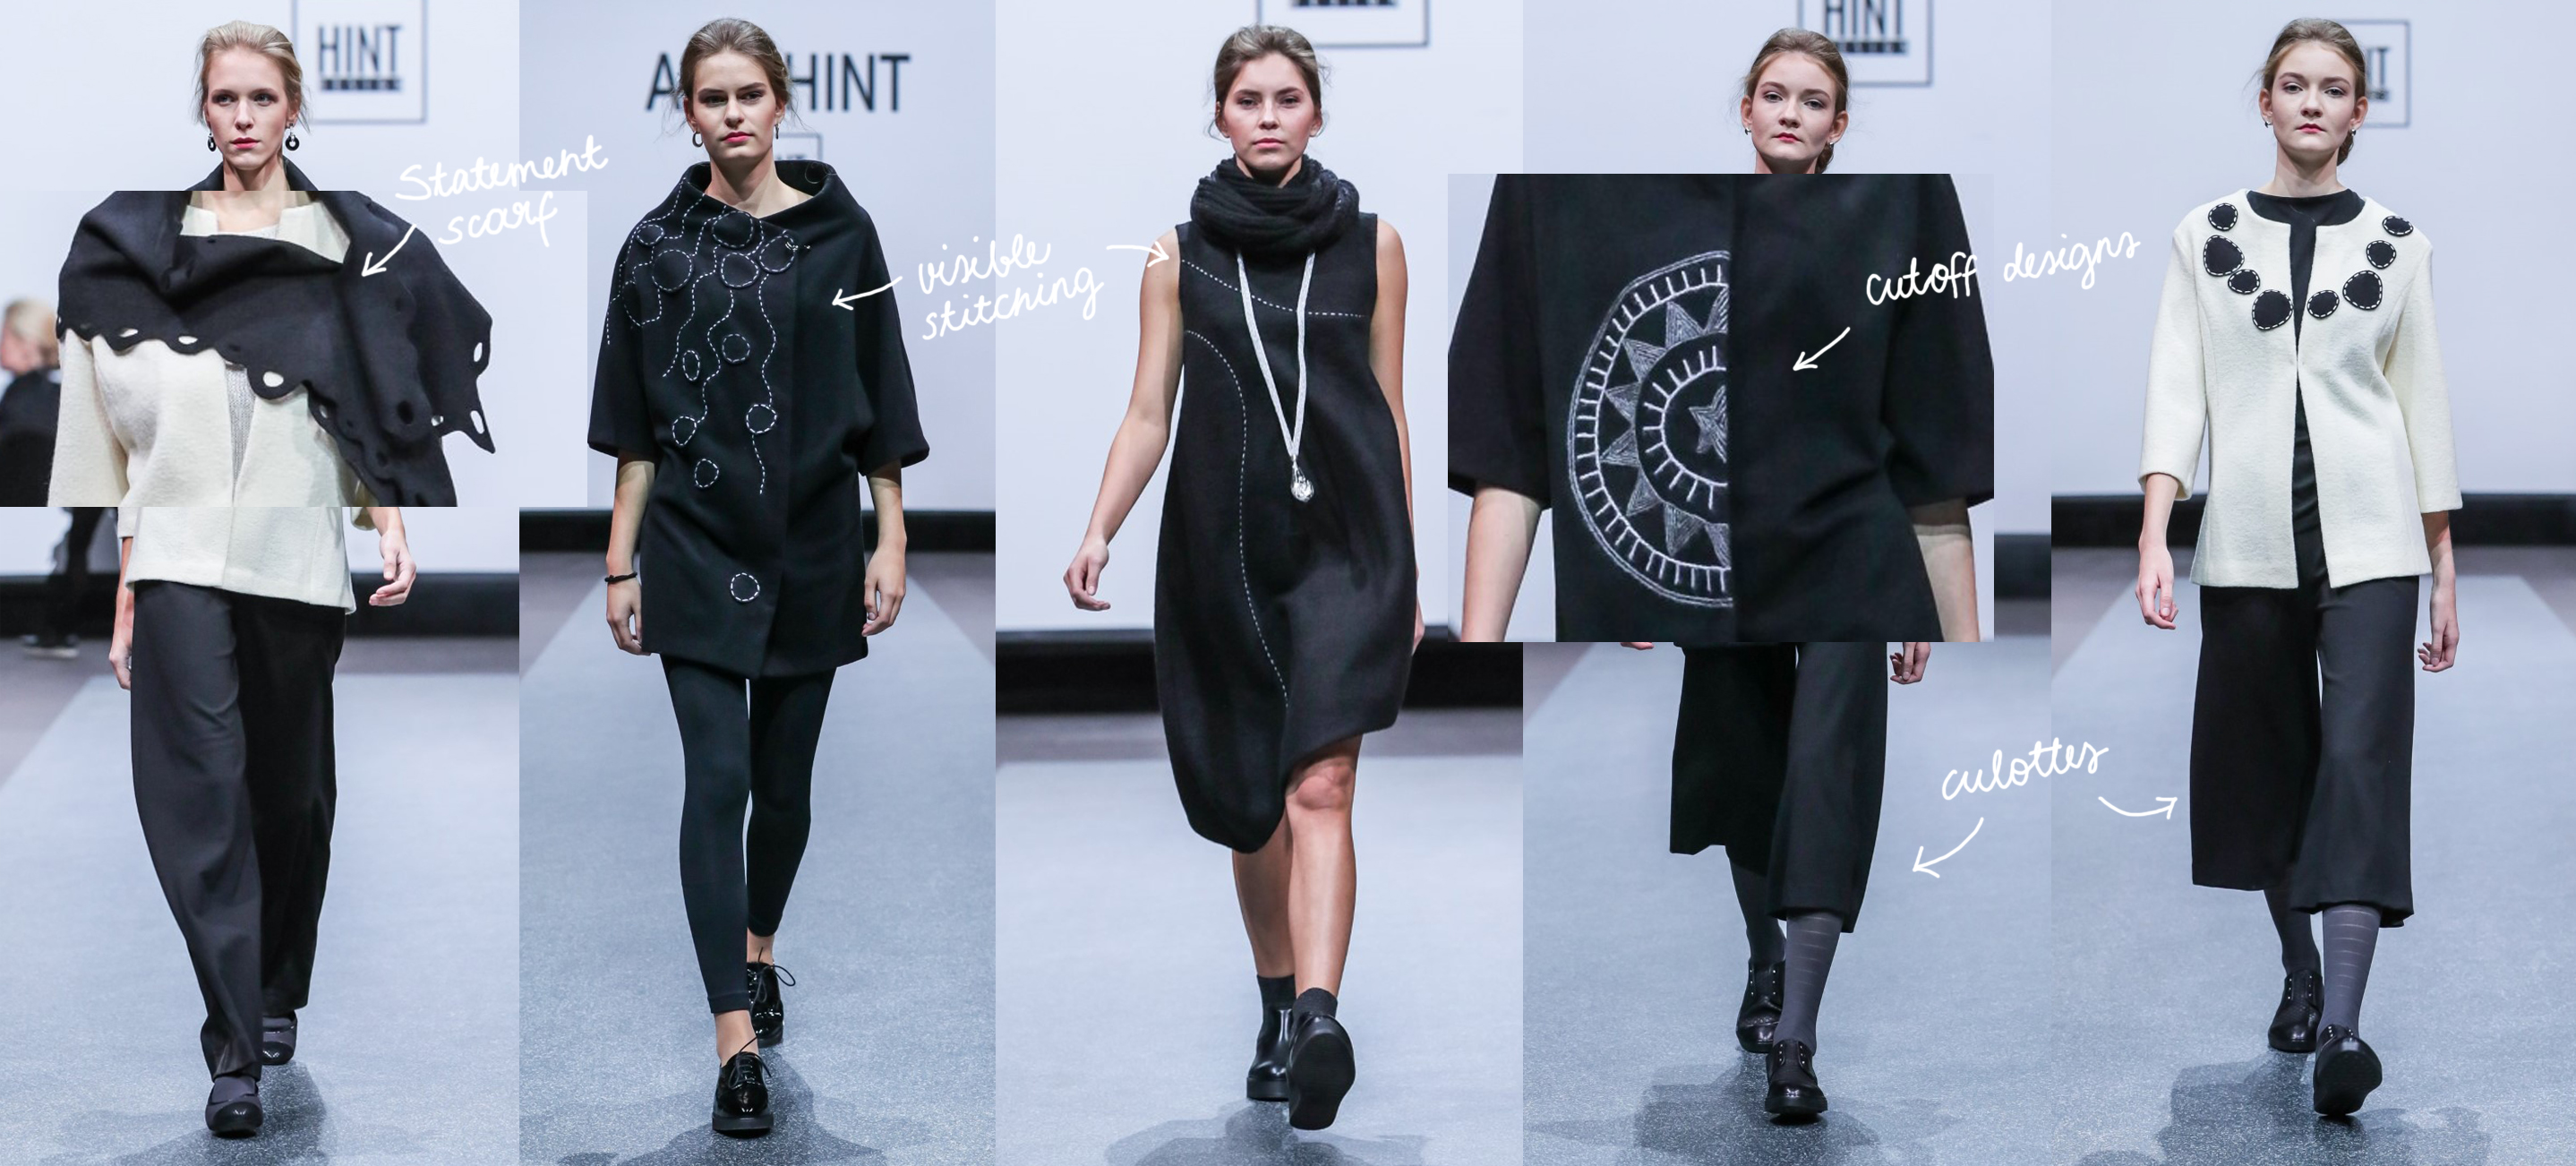 Tallinn Fashion Week Day 2